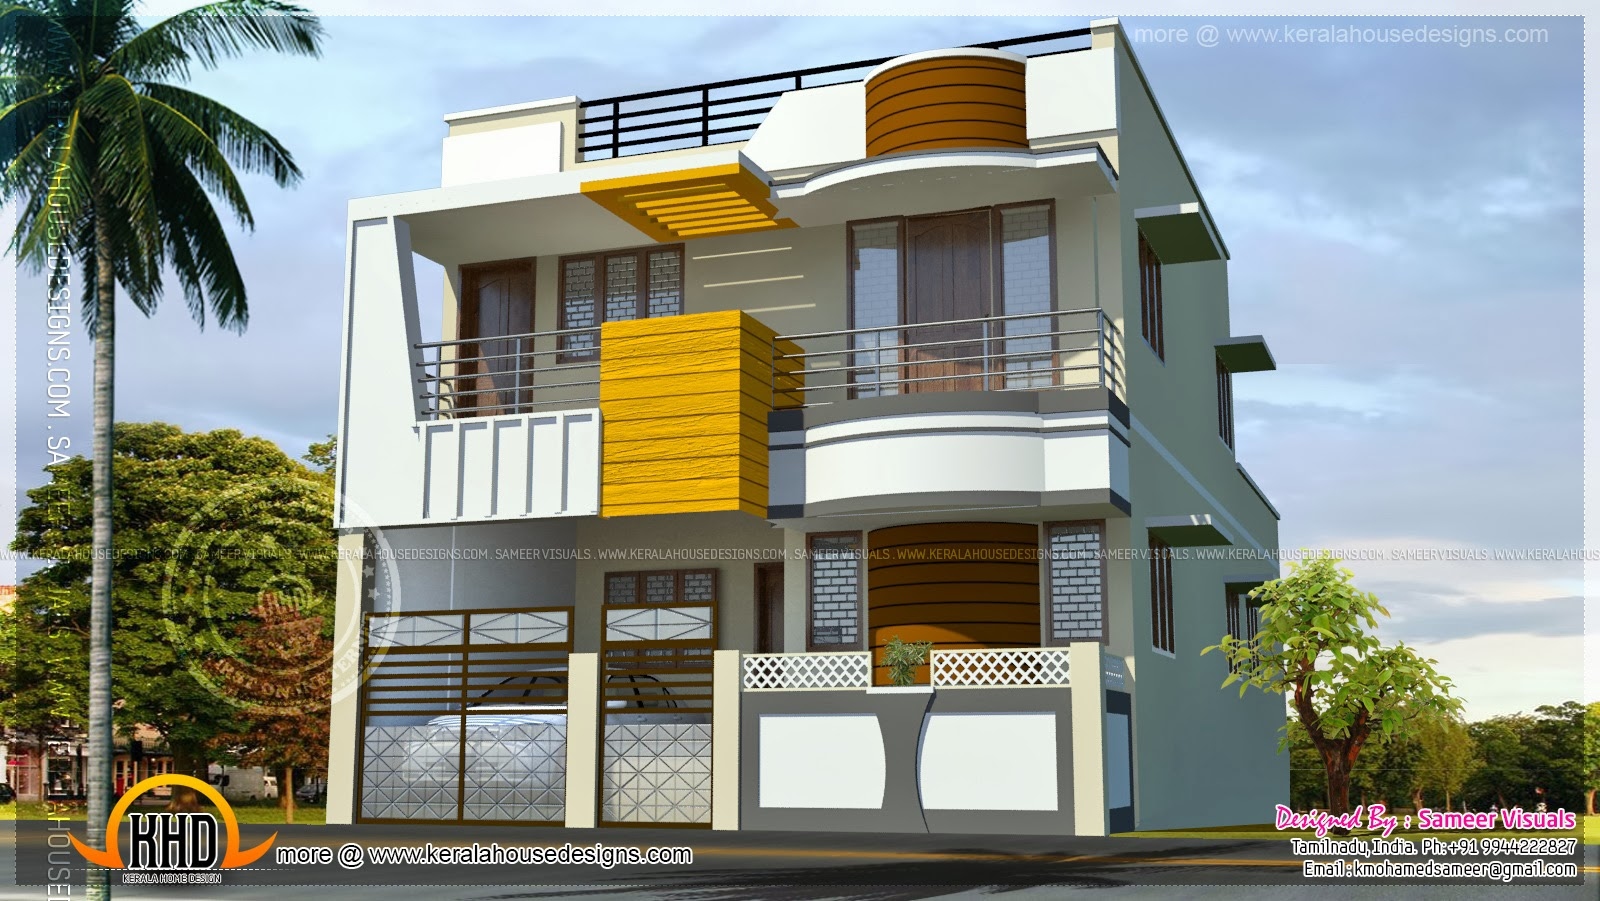 Adorable 10 Indian House Designs Double Floor Decorating Design